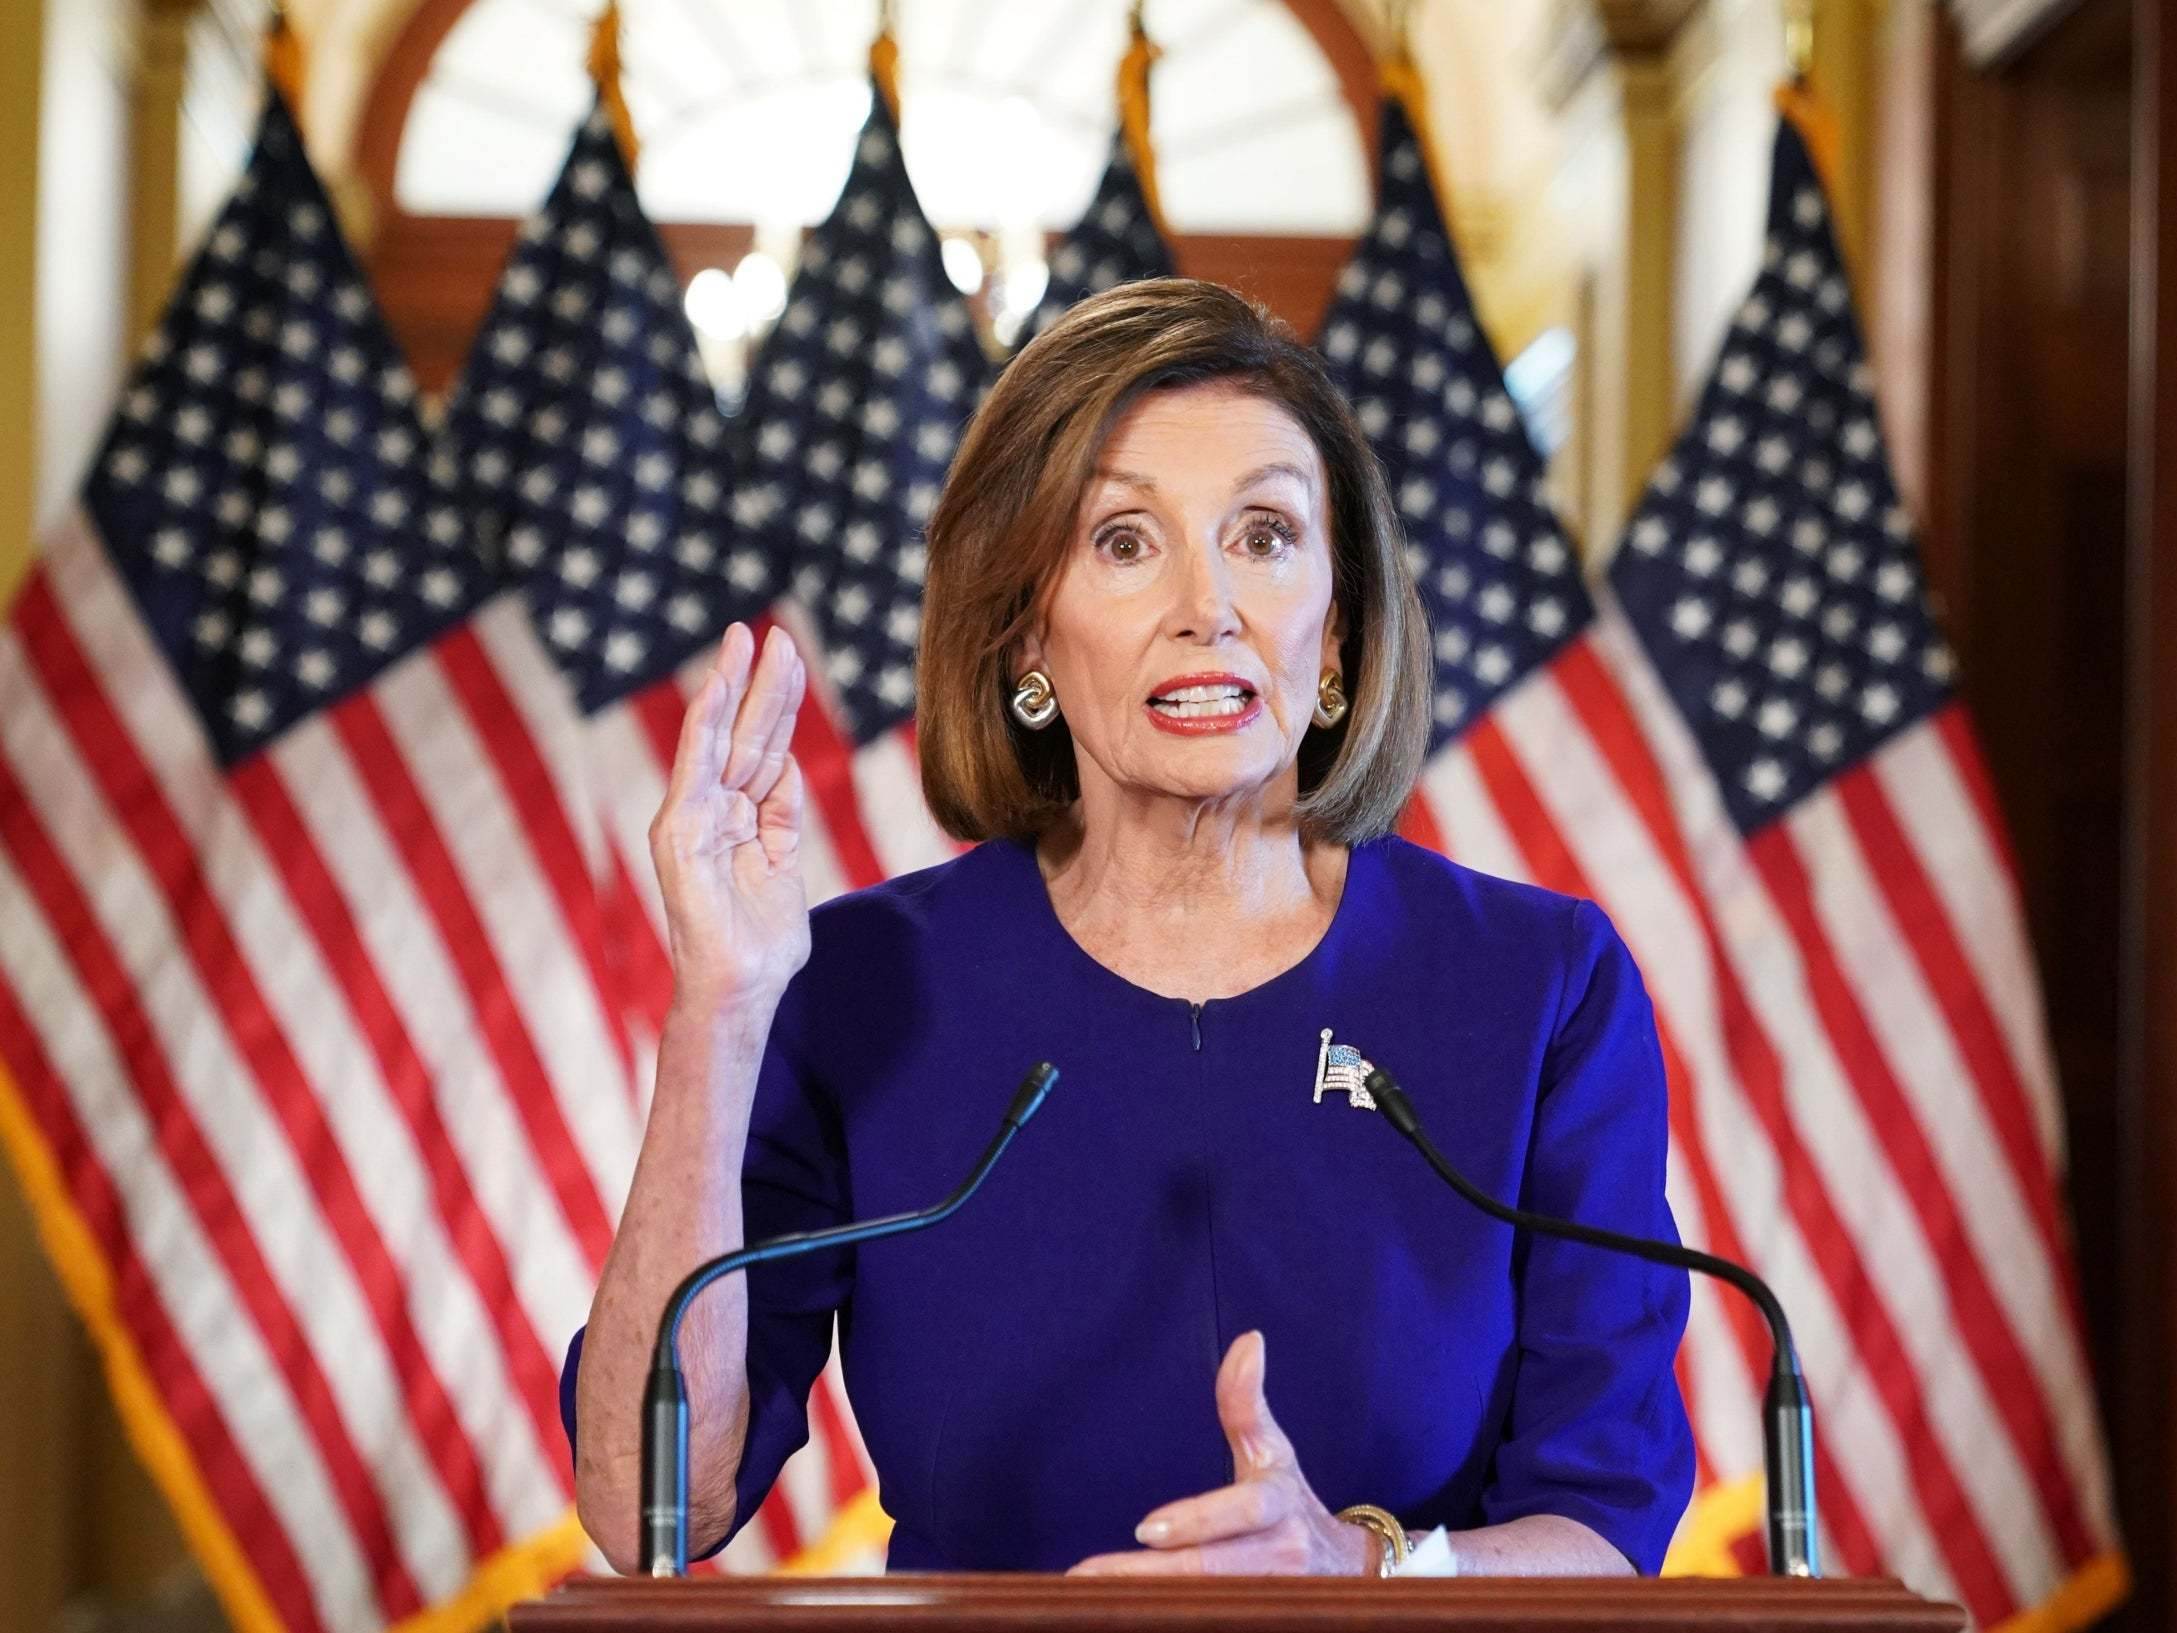 Trump called Pelosi to ask if they could work something out before impeachment launched, report says